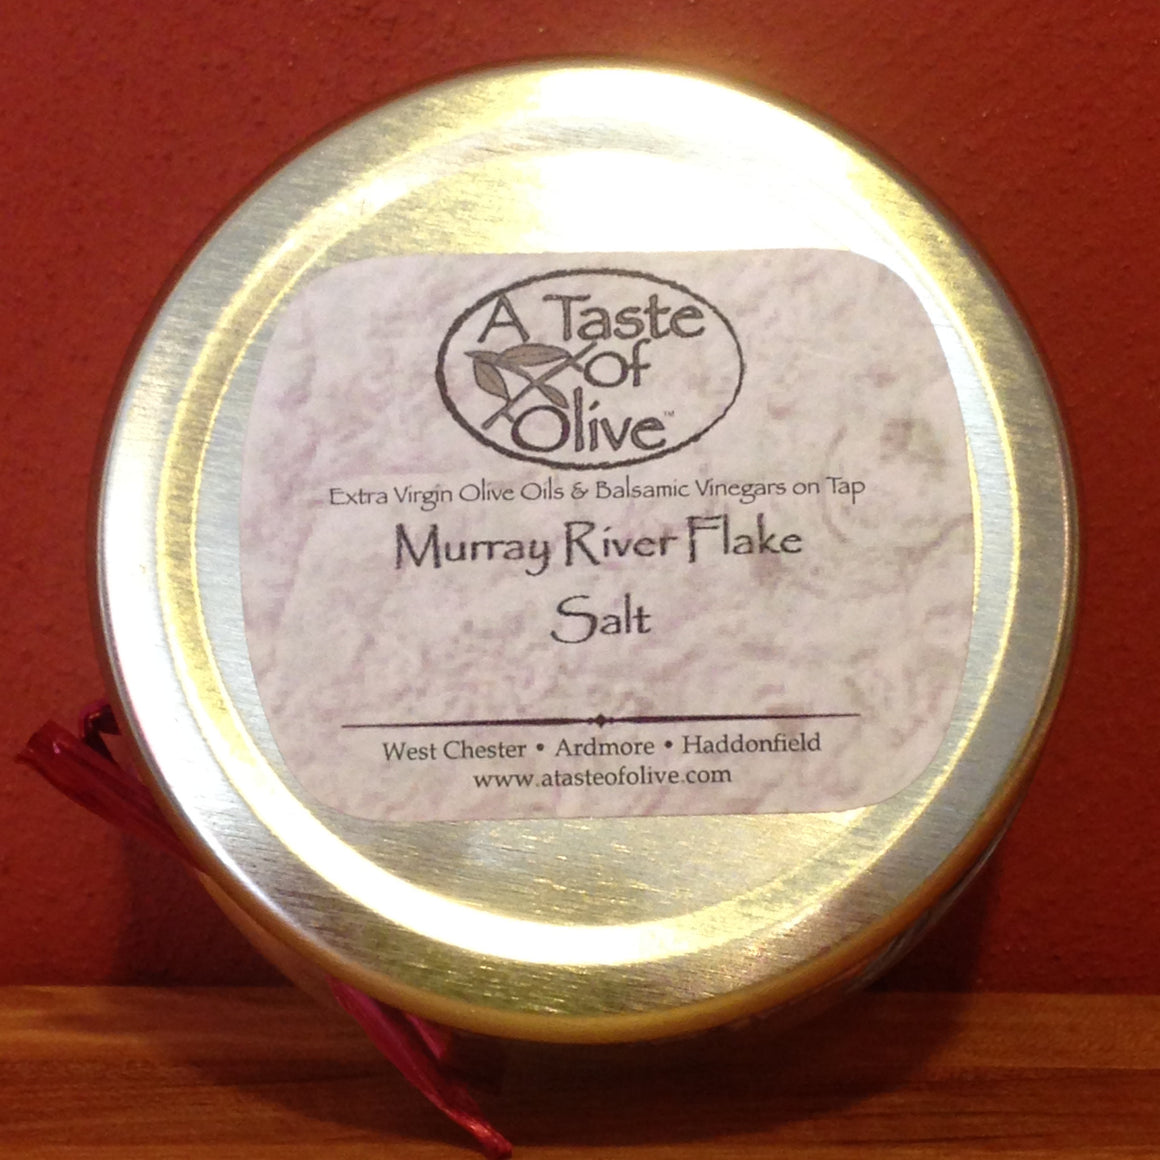 Murray River Pink Flake Salt - A Taste of Olive